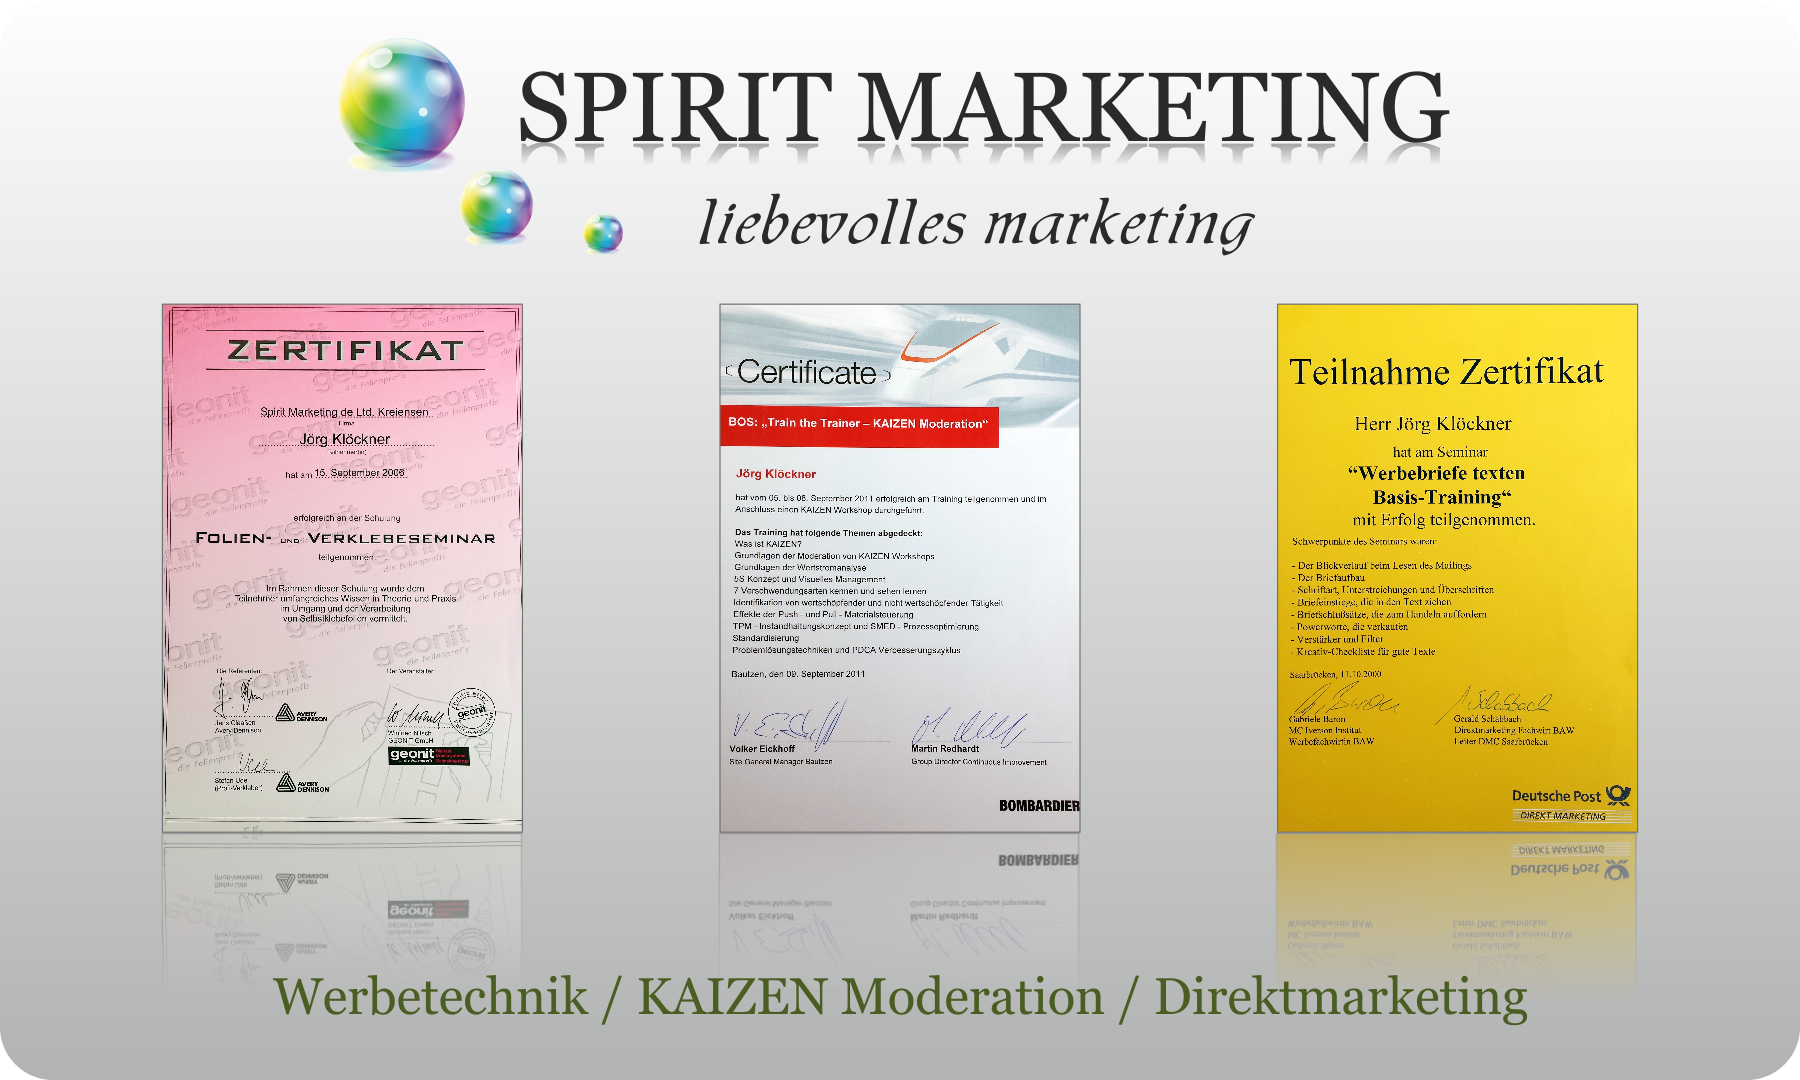 SPIRIT MARKETING - Spirit Werbetechnik - Zertifikate